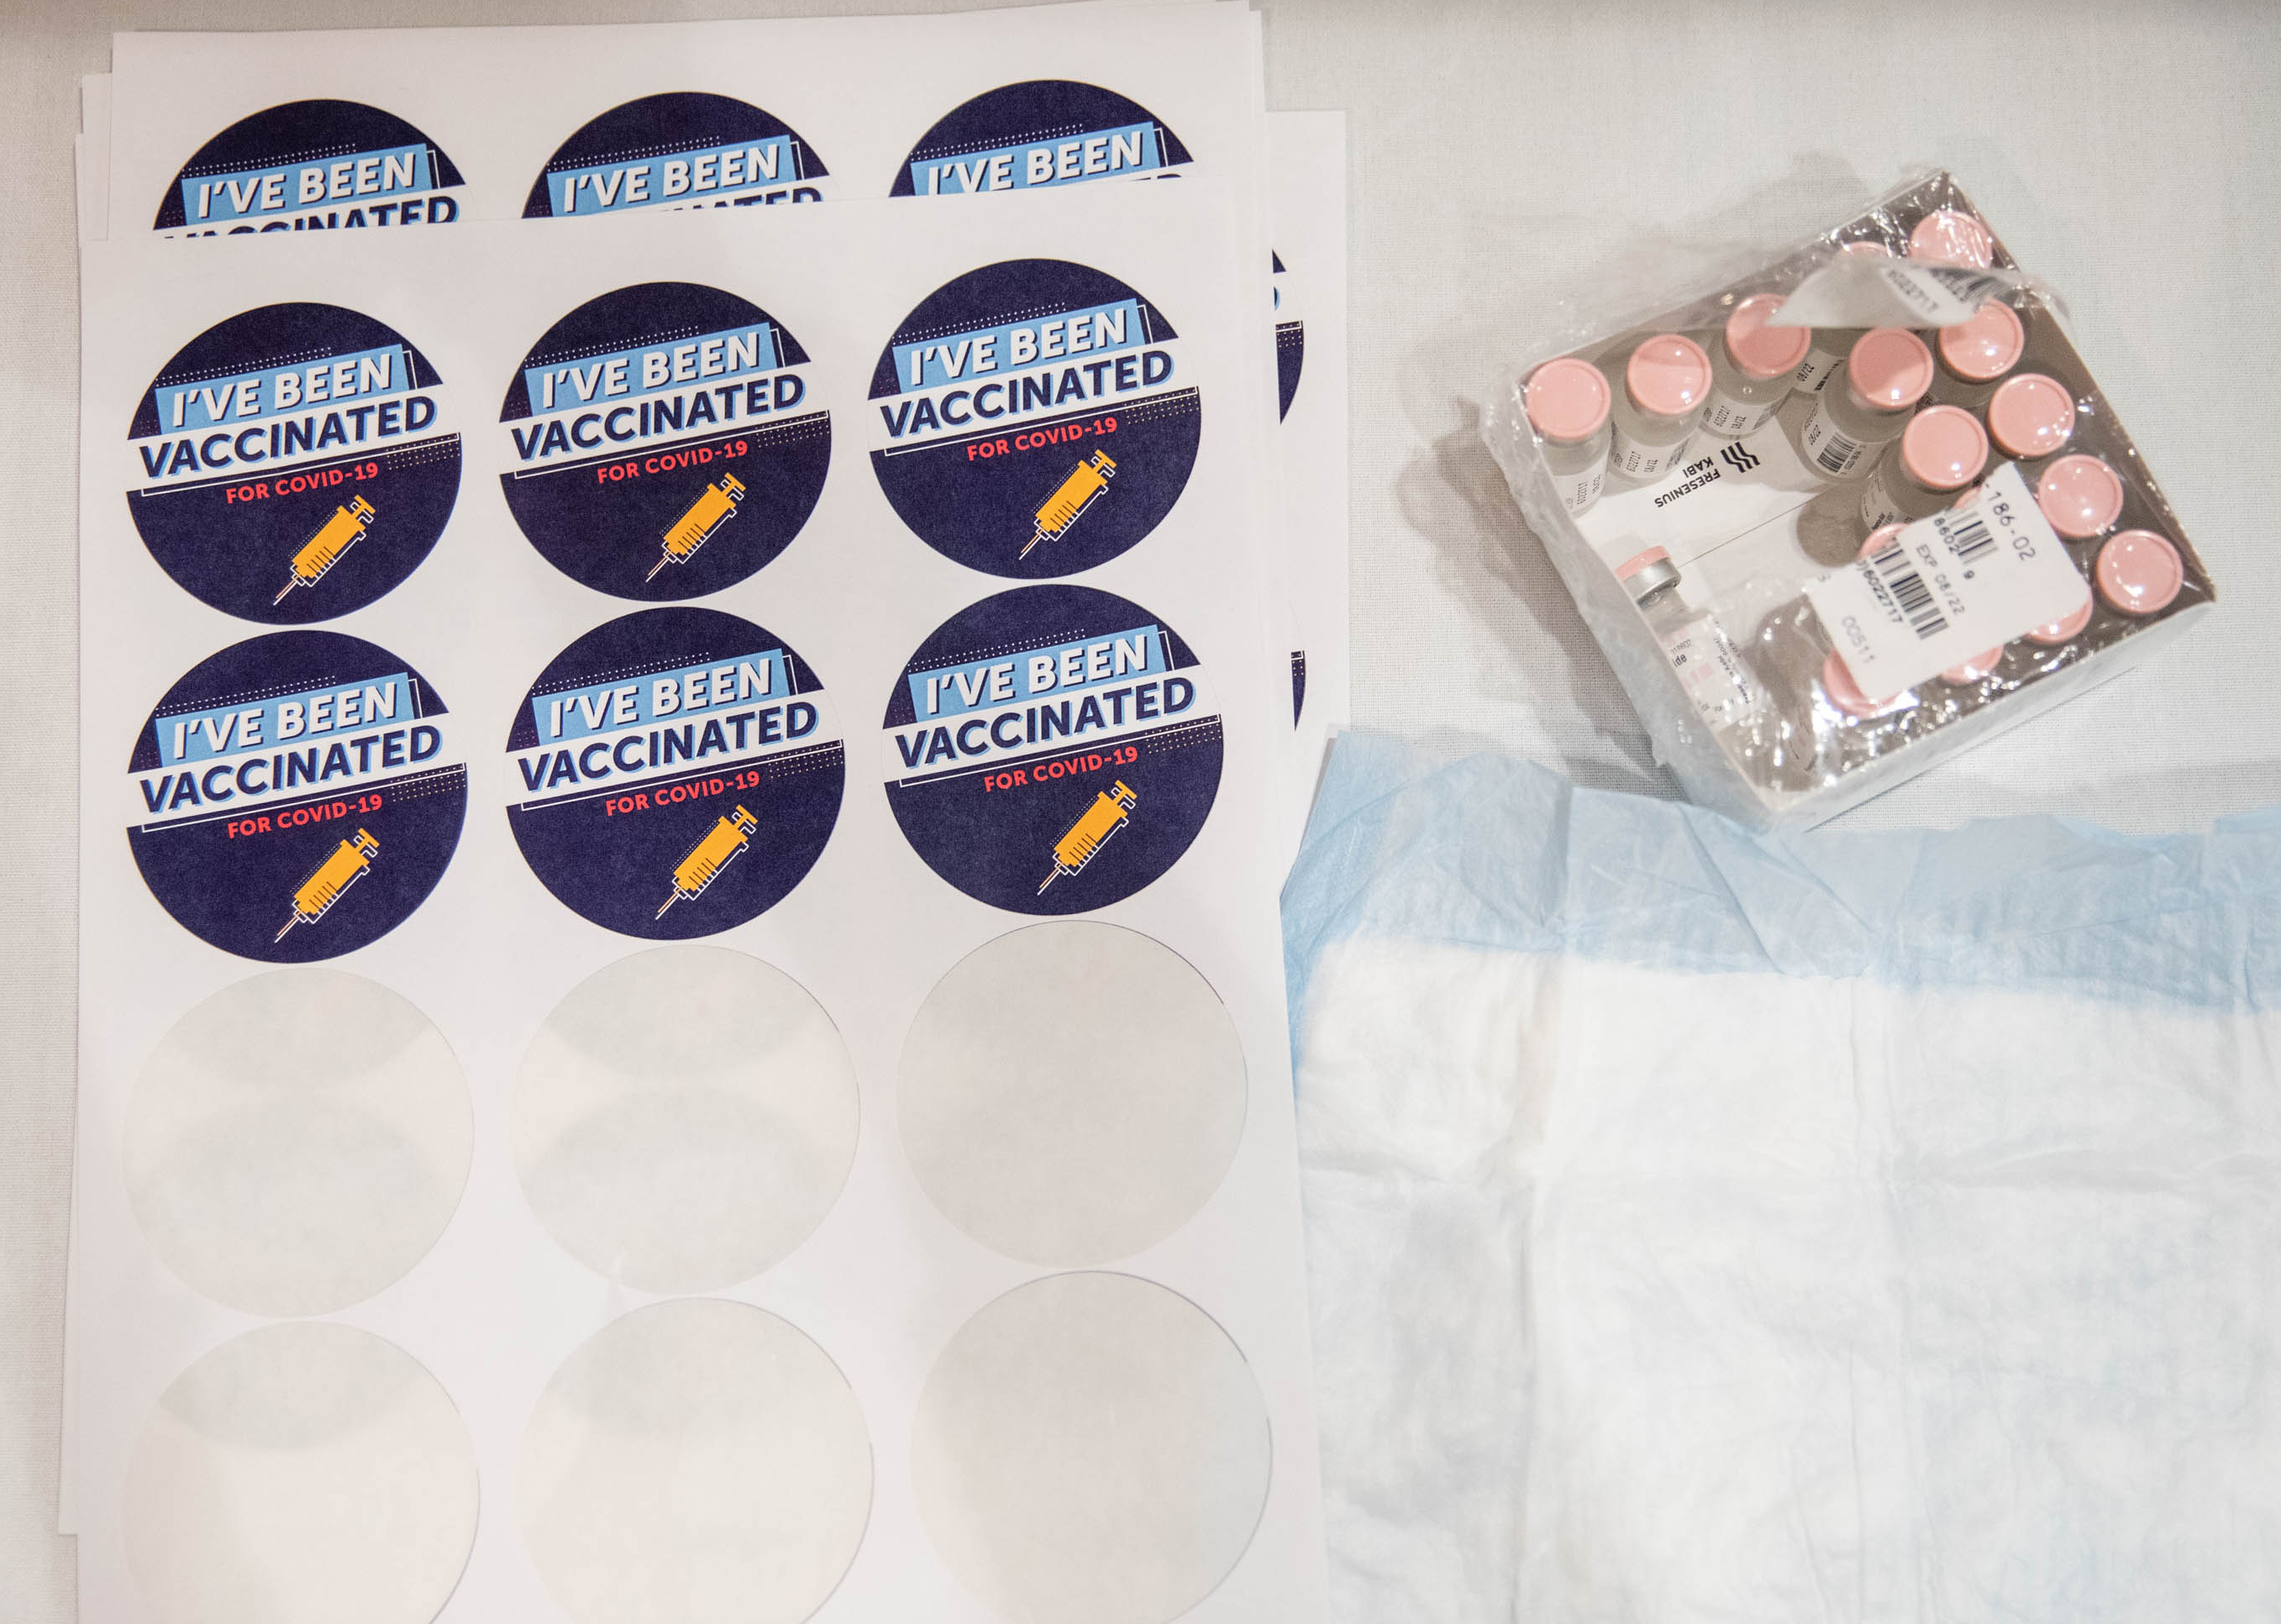 """A box of vials filled with Pfizer's Covid-19 vaccine five doses per vial sits next to a pile of stickers that read """"I've been vaccinated for Covid-19"""" on the preparation table at Thomas Jefferson University Hospital in Philadelphia, Pennsylvania, on December 16, 2020."""